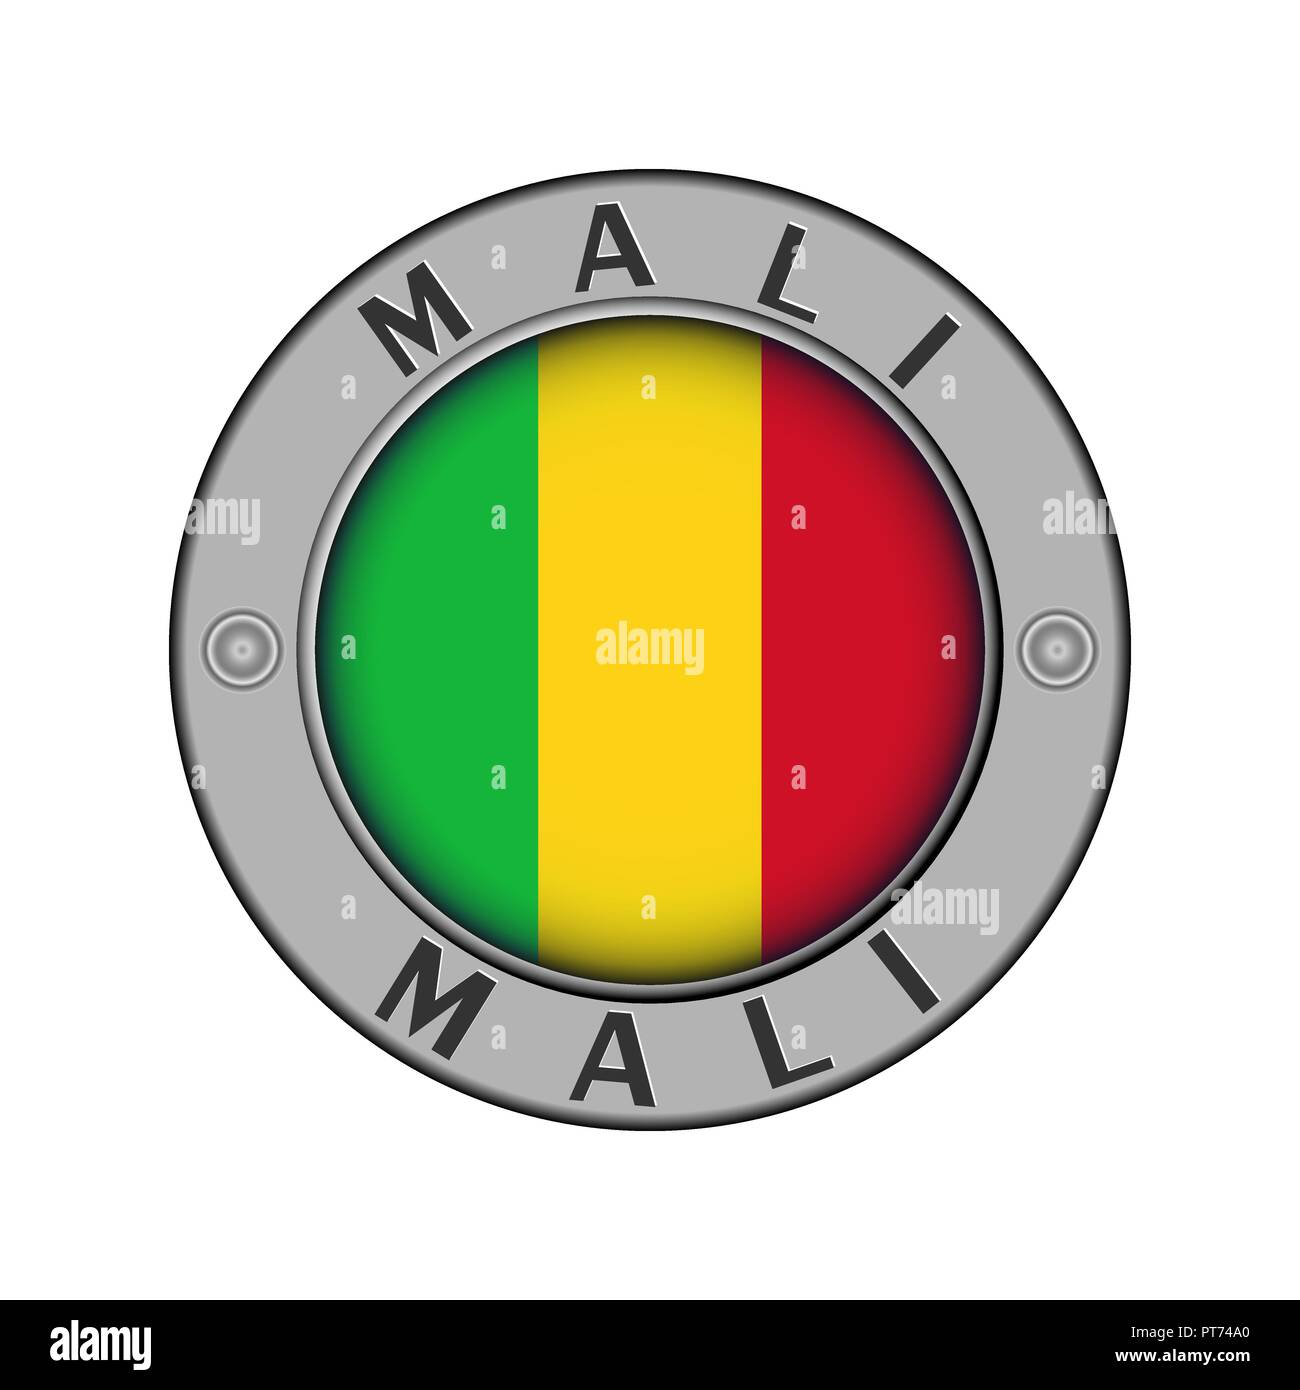 Image result for Mali name